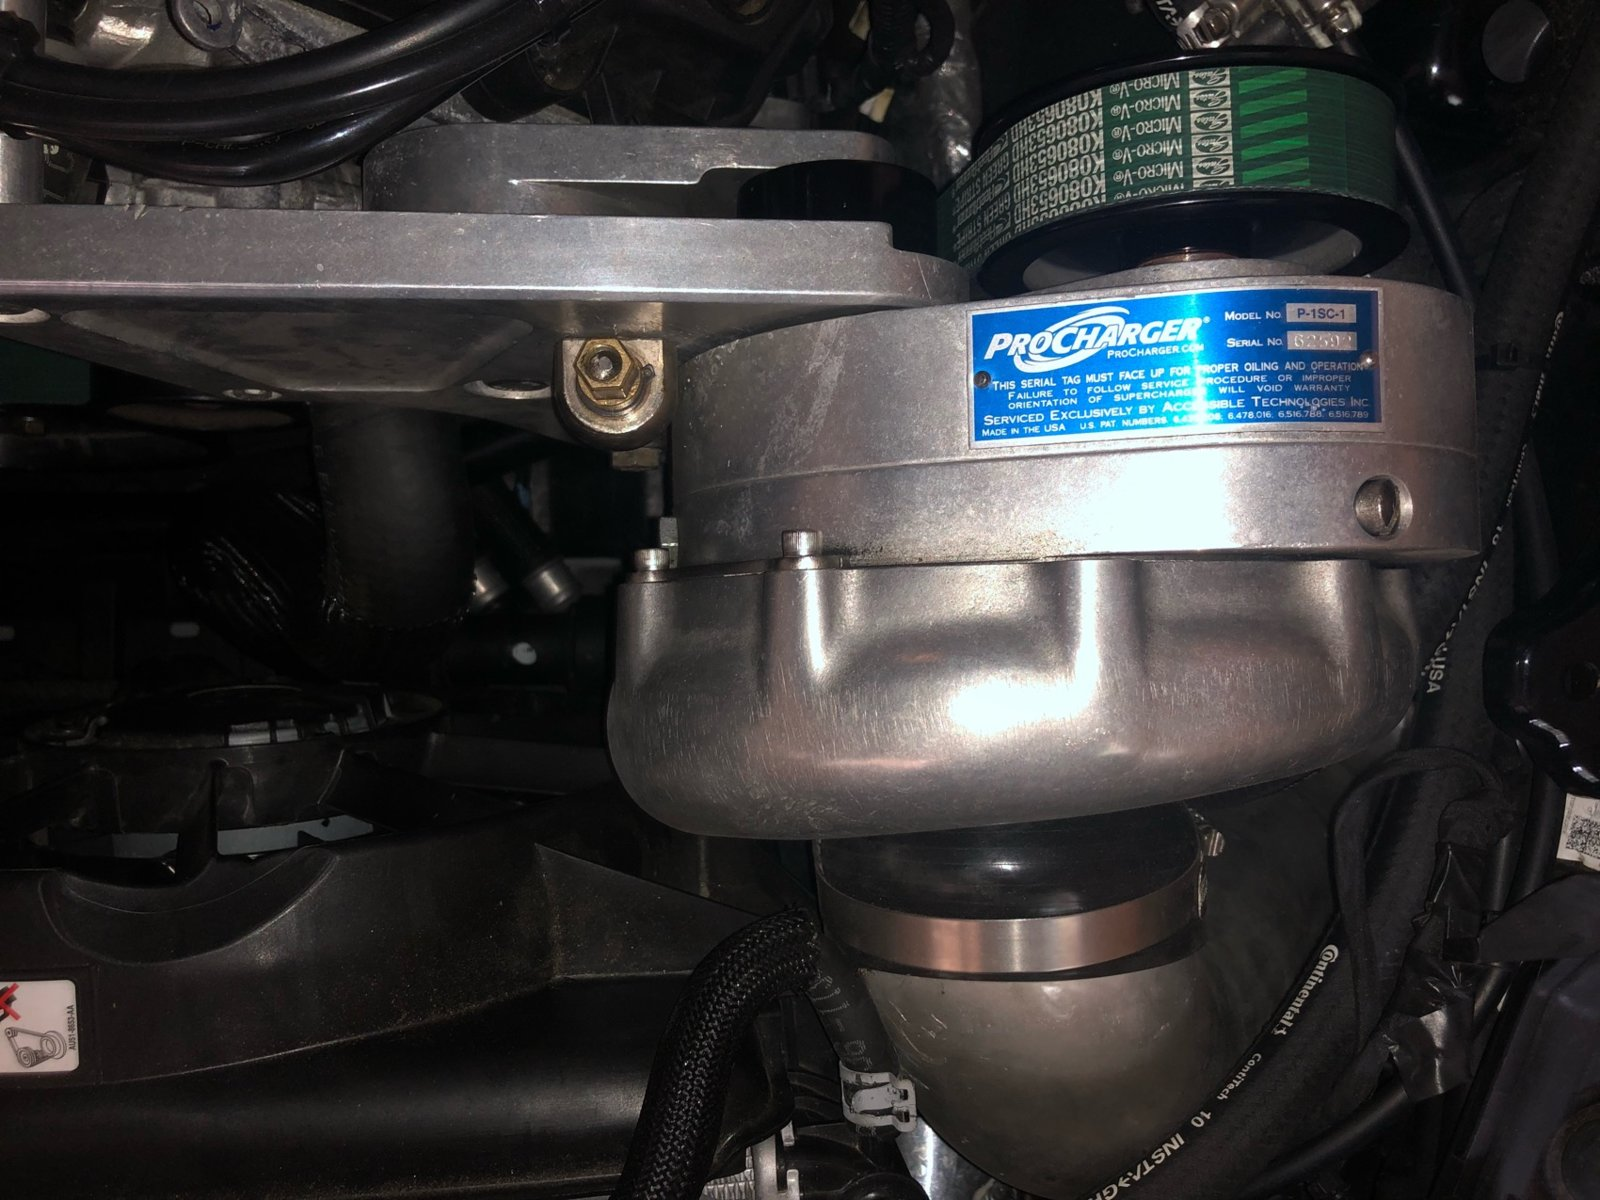 Procharger P1 Stage II, ID1050X, TIAL BOV/WG, and much more